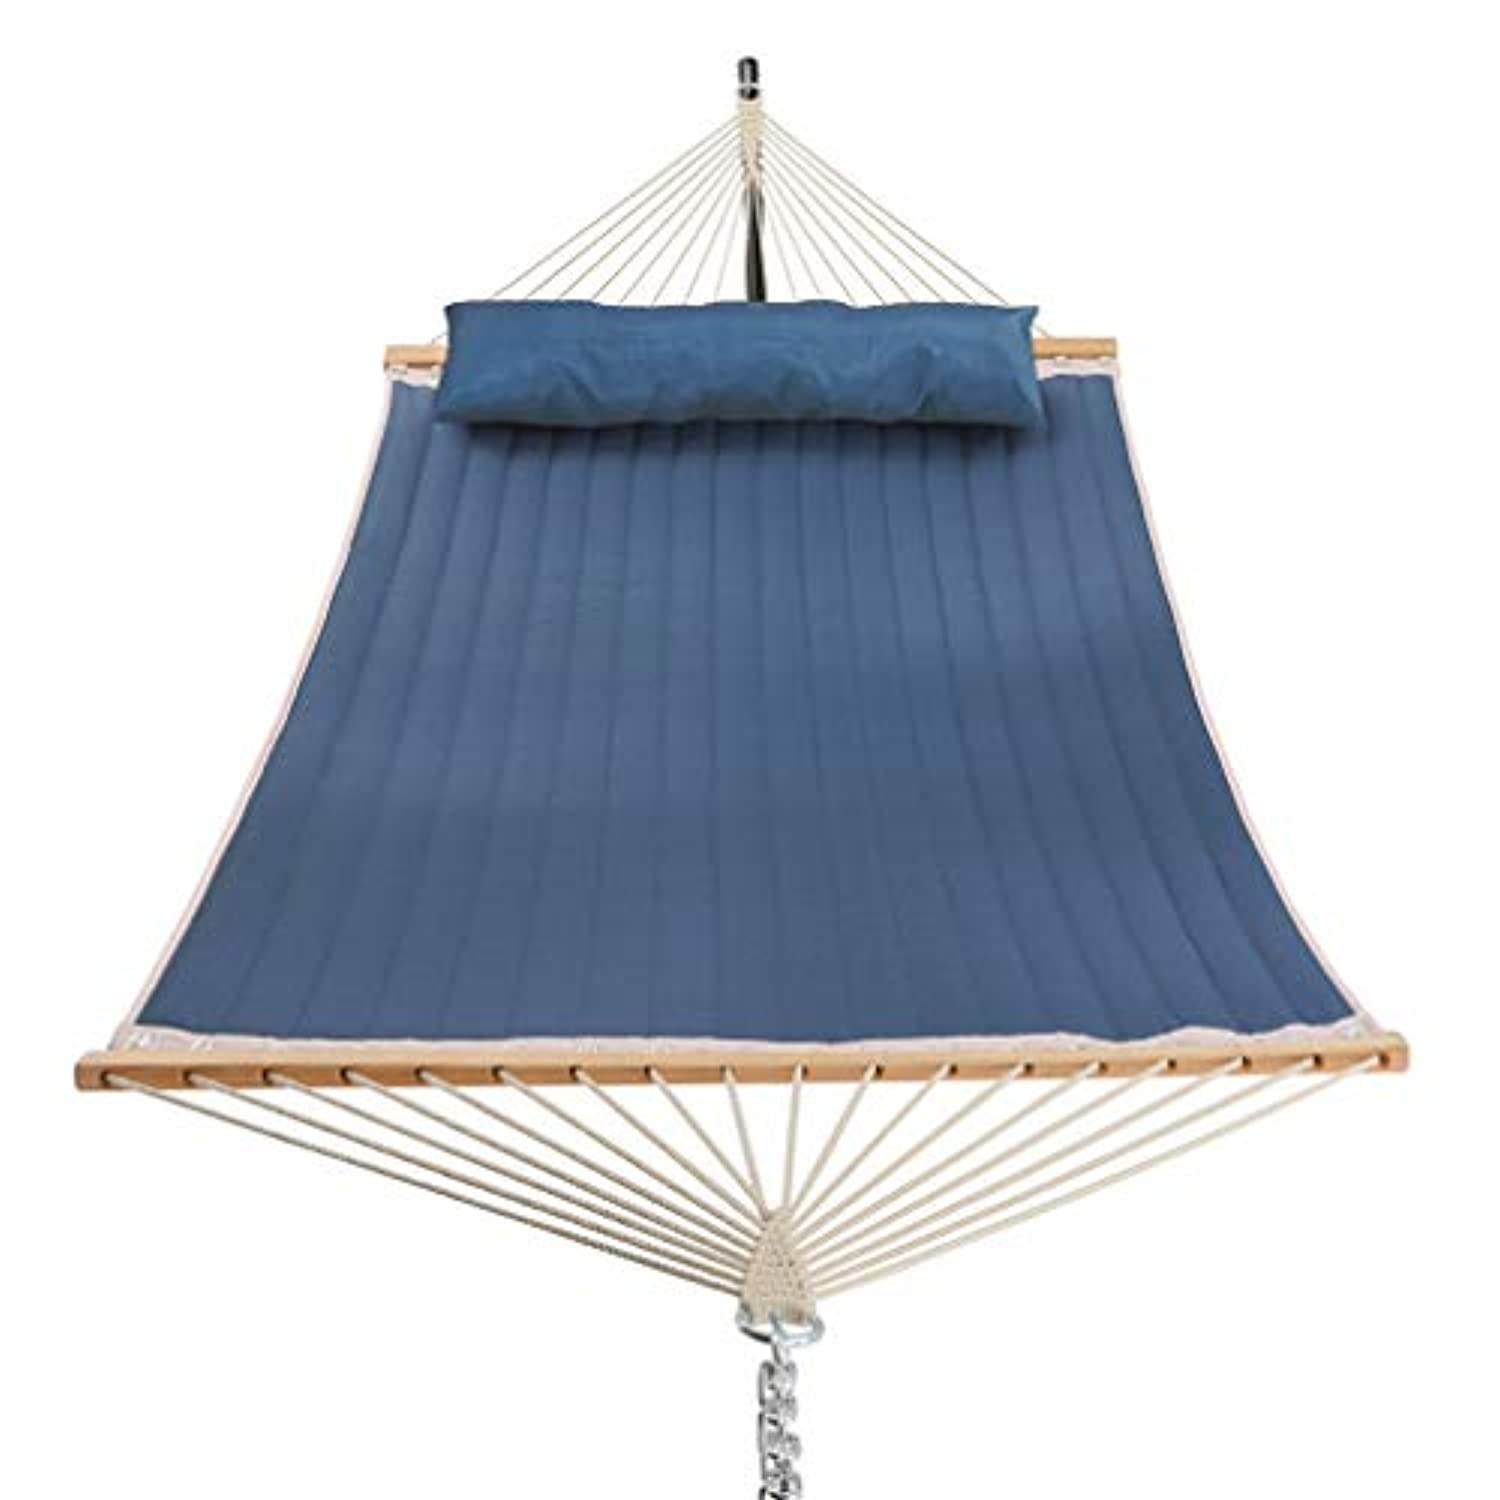 11 Feet Quilted Fabric Hammock with Pillow